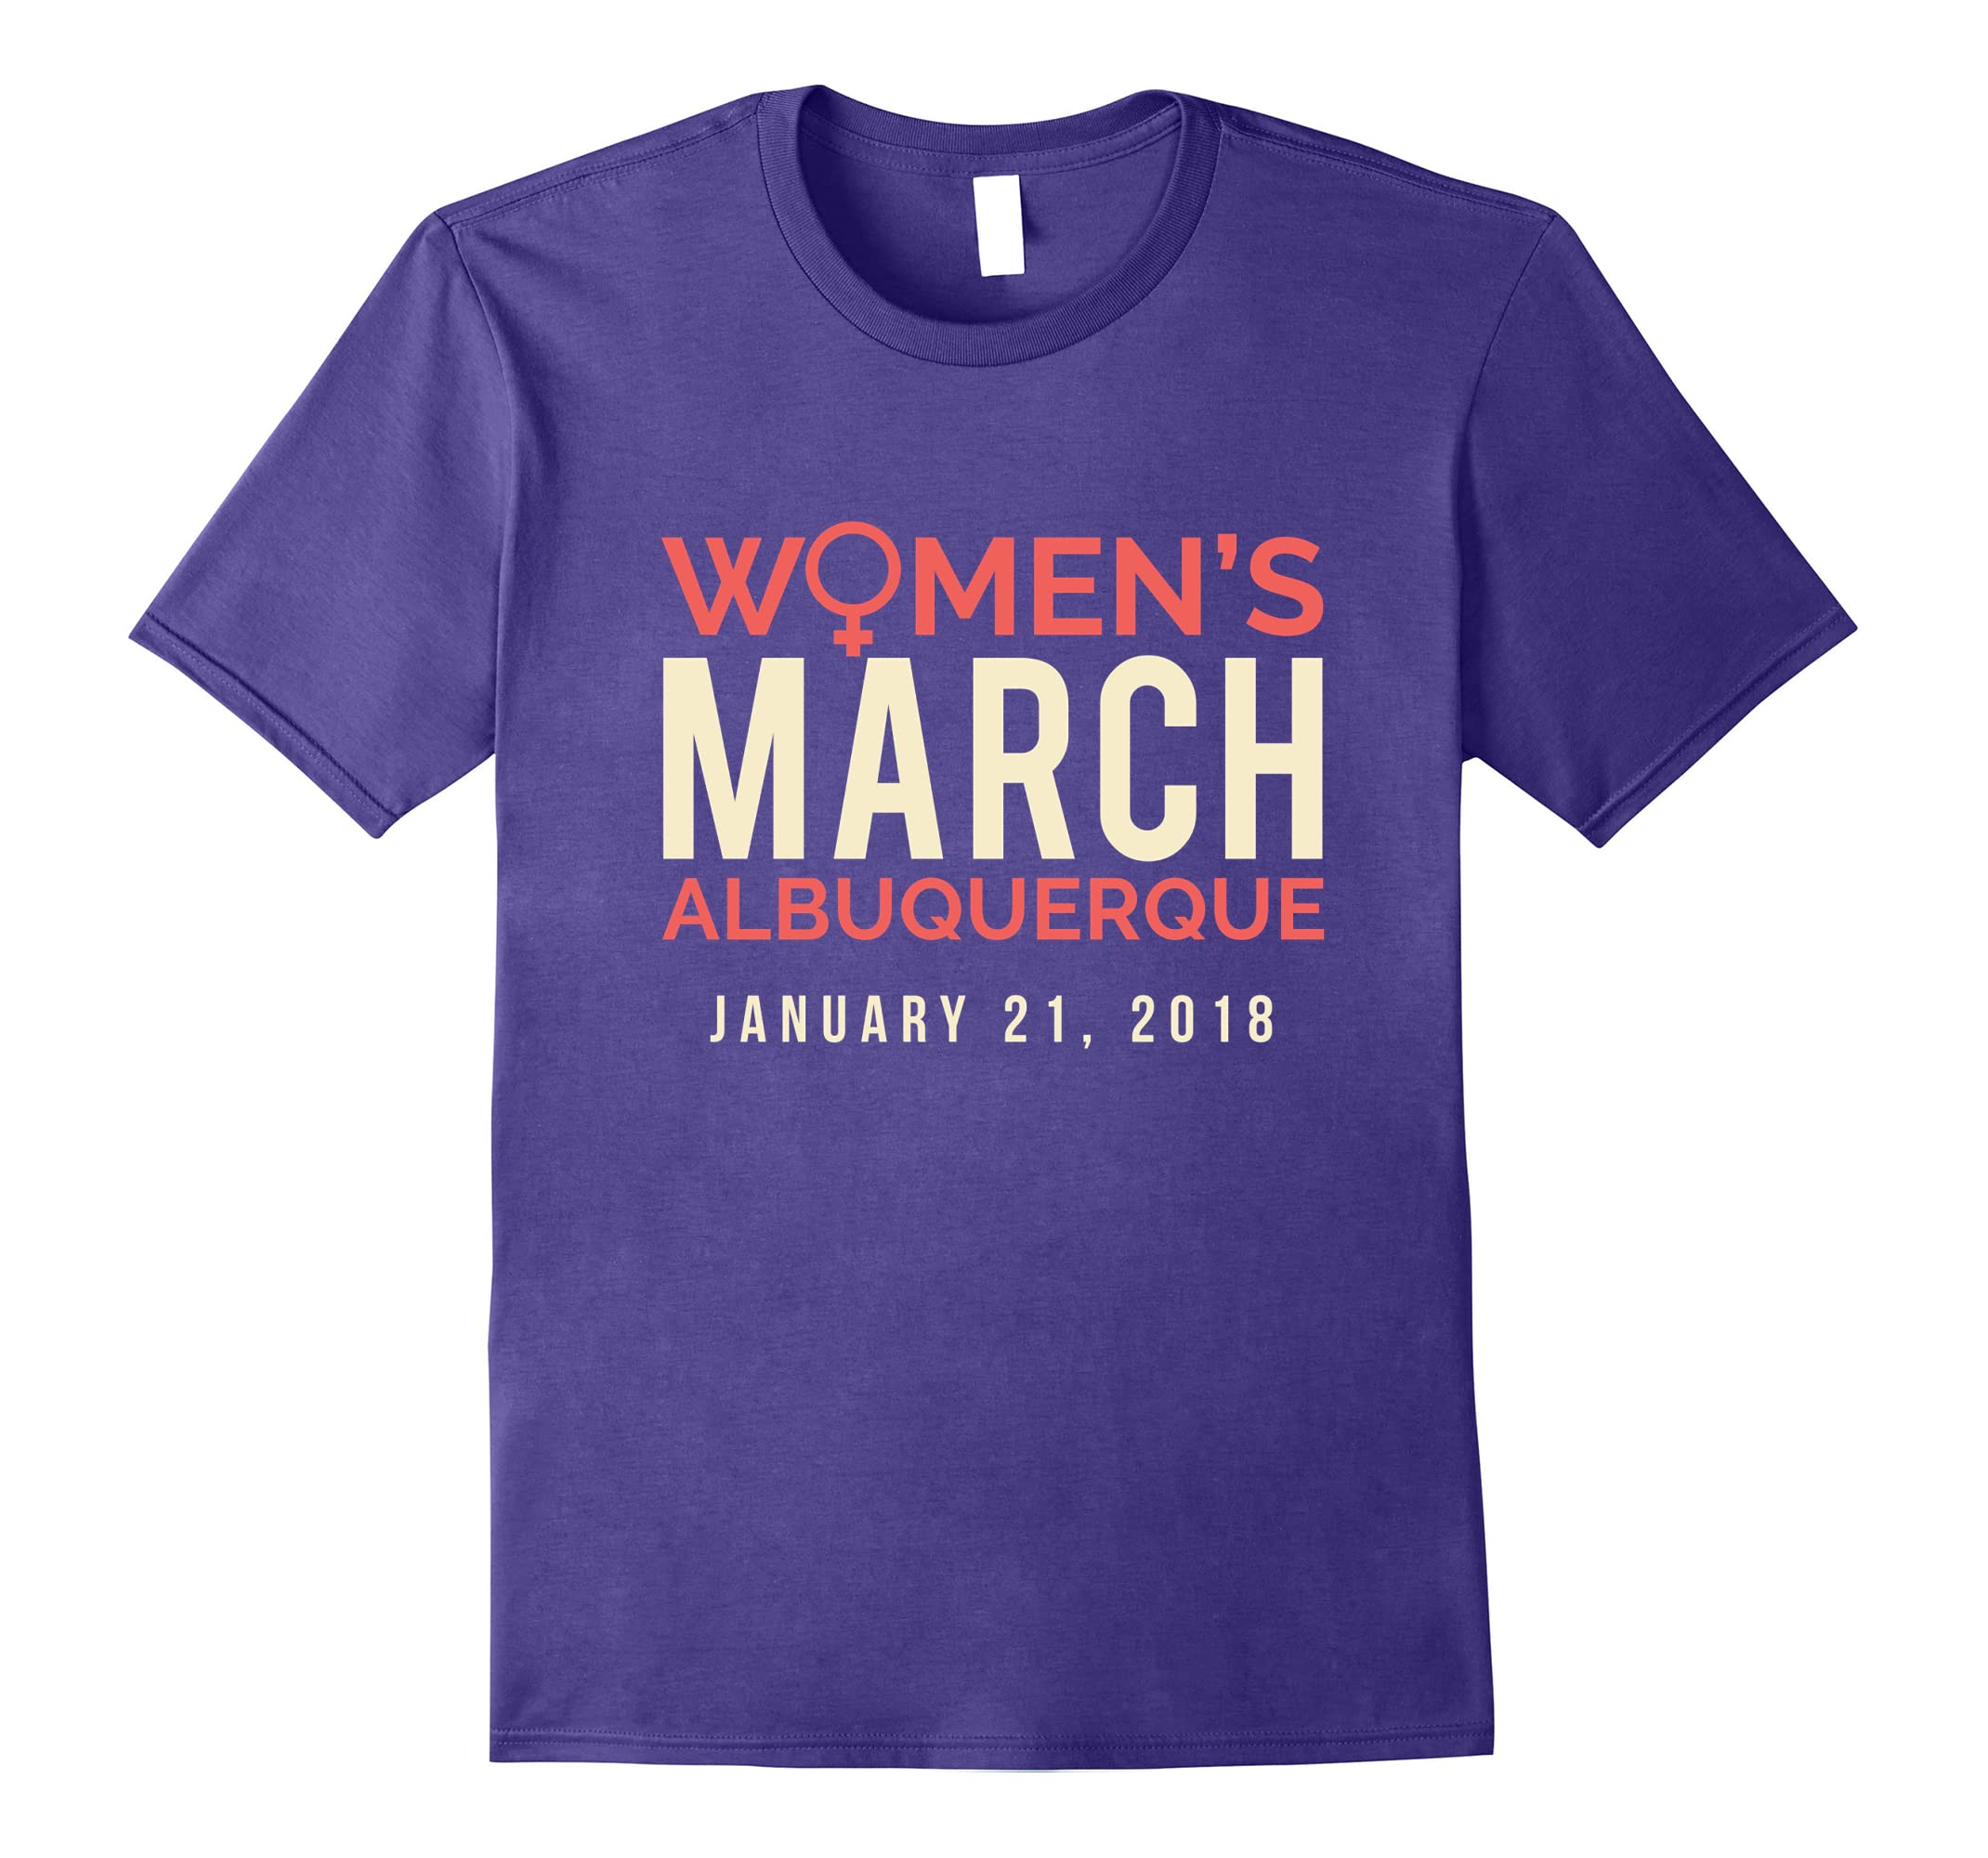 Albuquerque NM Women's March January 21 2018 Tee Shirt-ah my shirt one gift